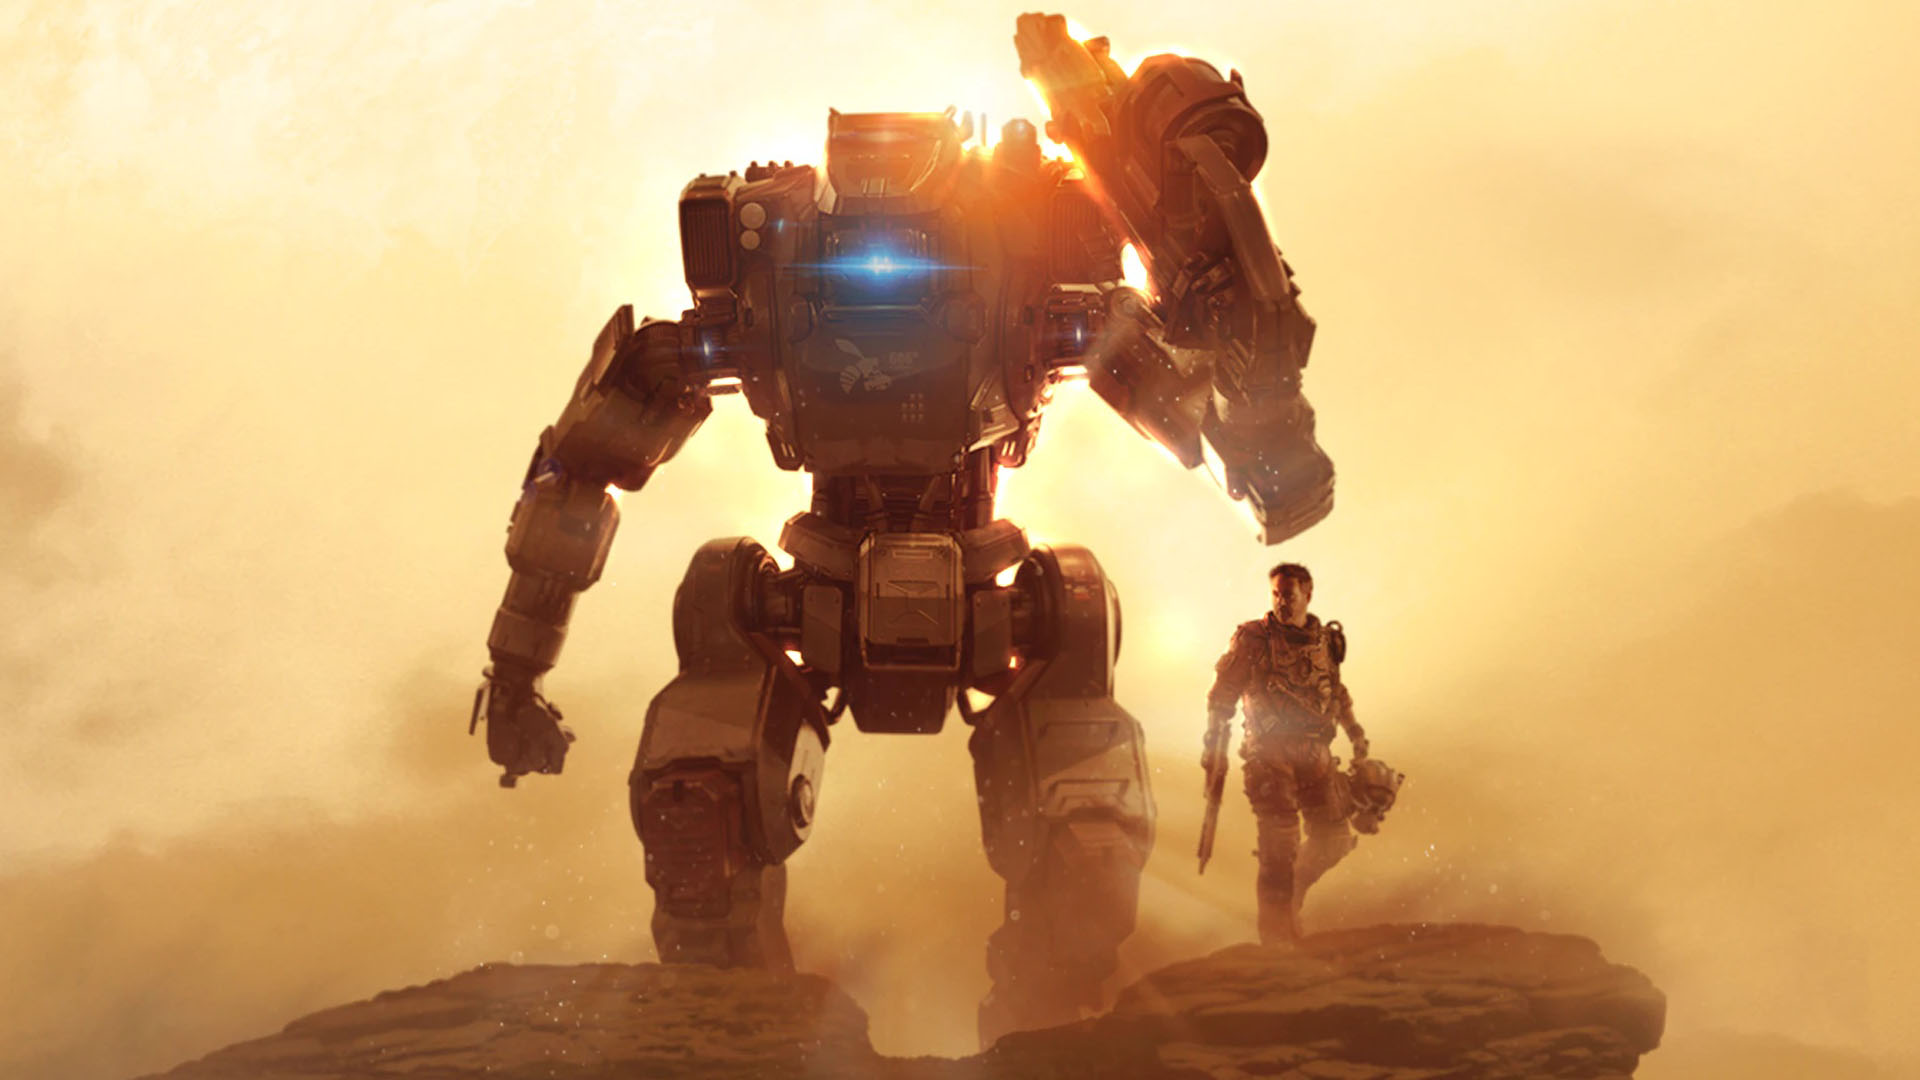 Respawn Entertainment is Working on a New Single Player Game